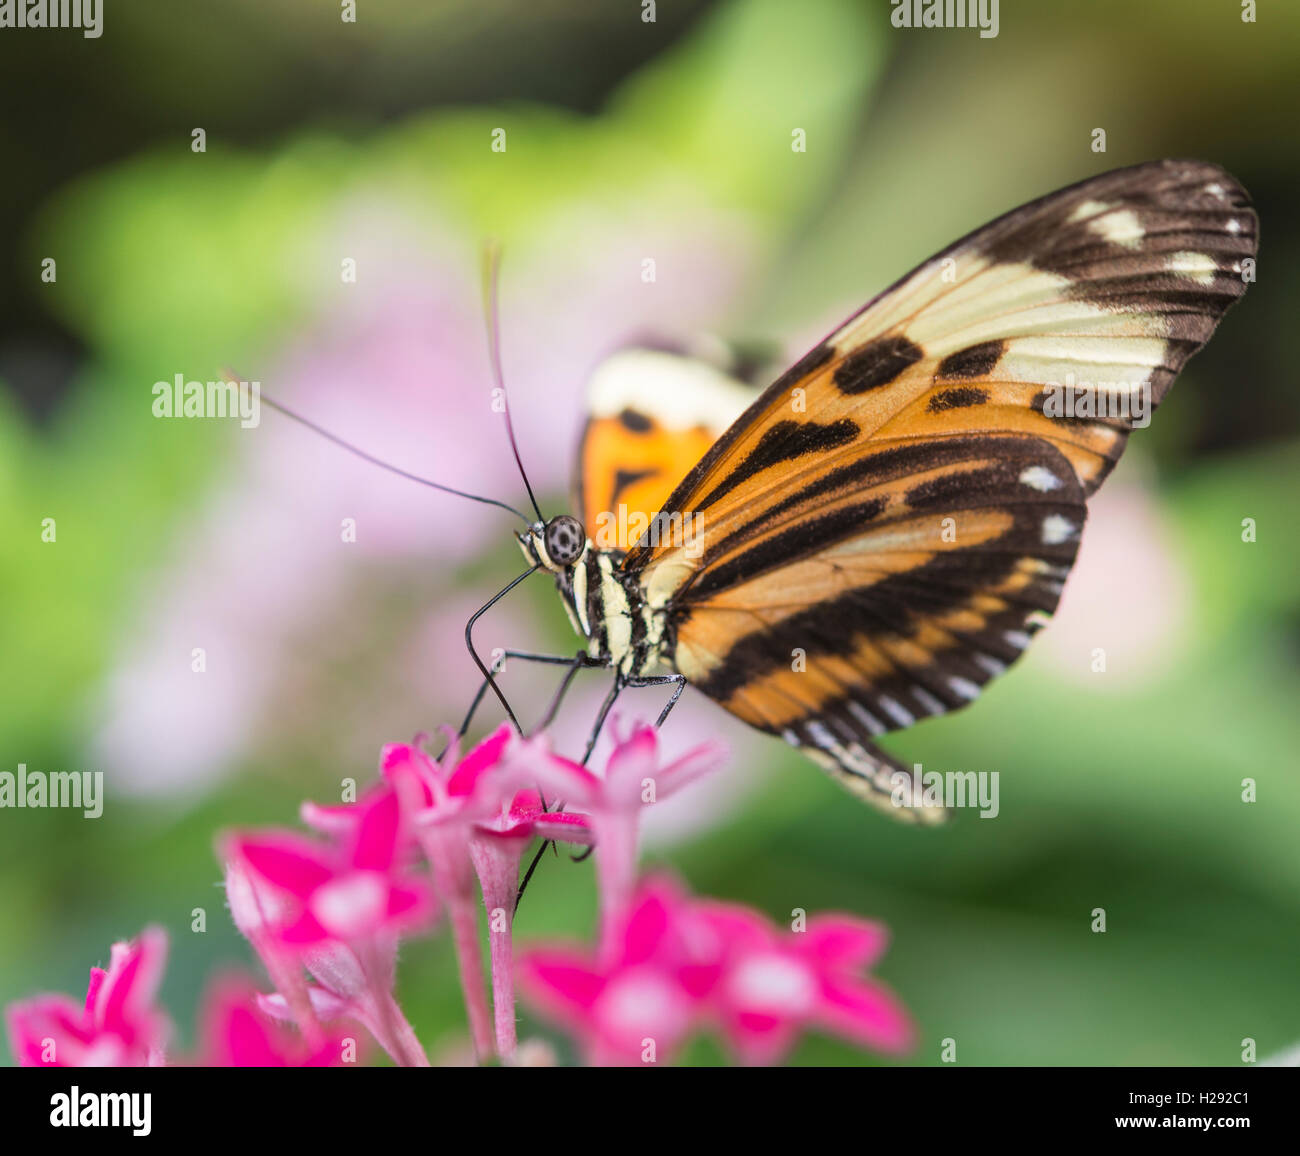 Xanthocles longwing (Heliconius xanthocles) sitting on pink flower, captive - Stock Image